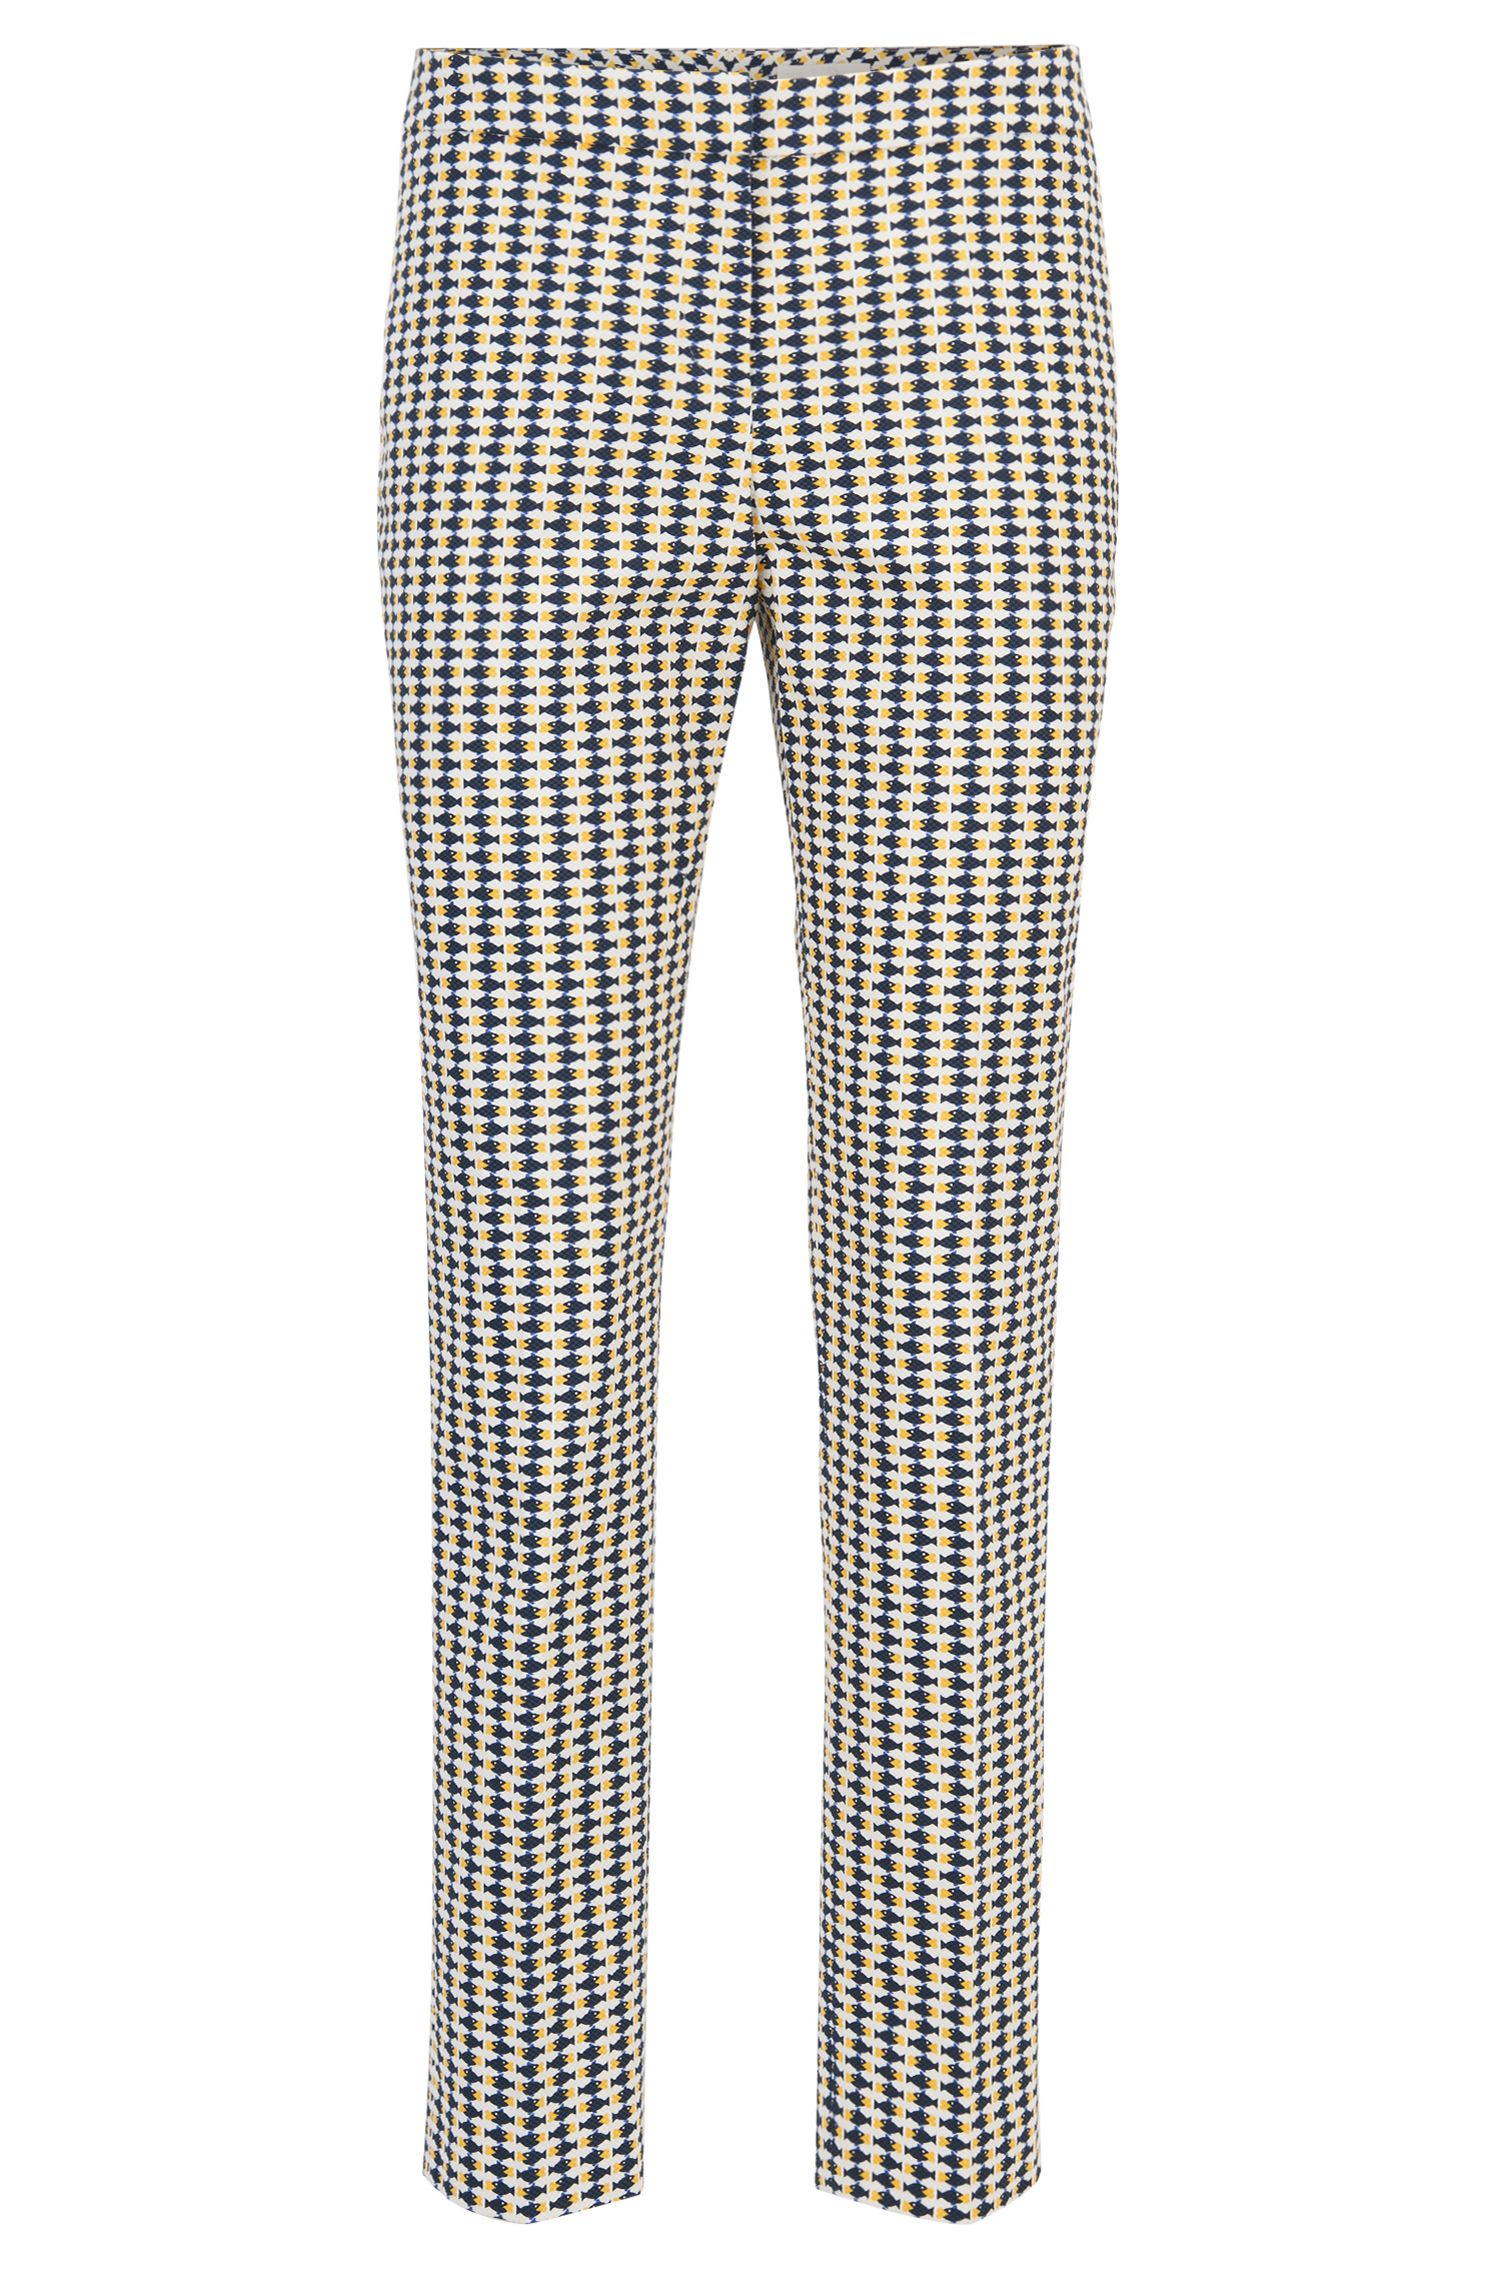 Cropped trousers in fish-print stretch cotton piqué